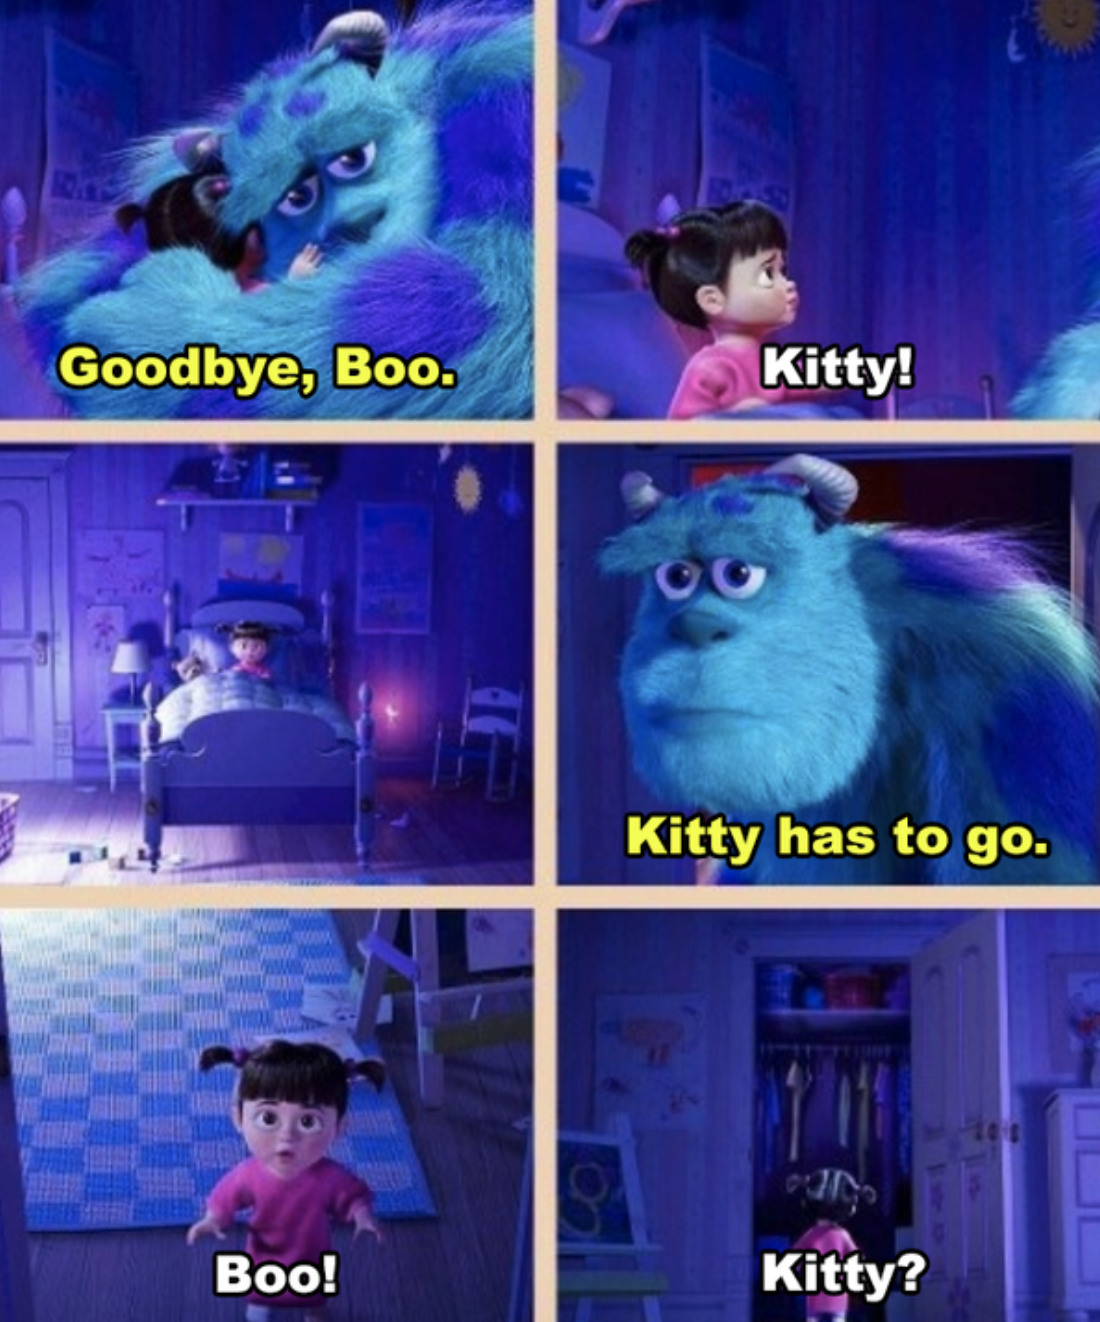 Sulley hugging Boo in her room and then exiting through her closet door